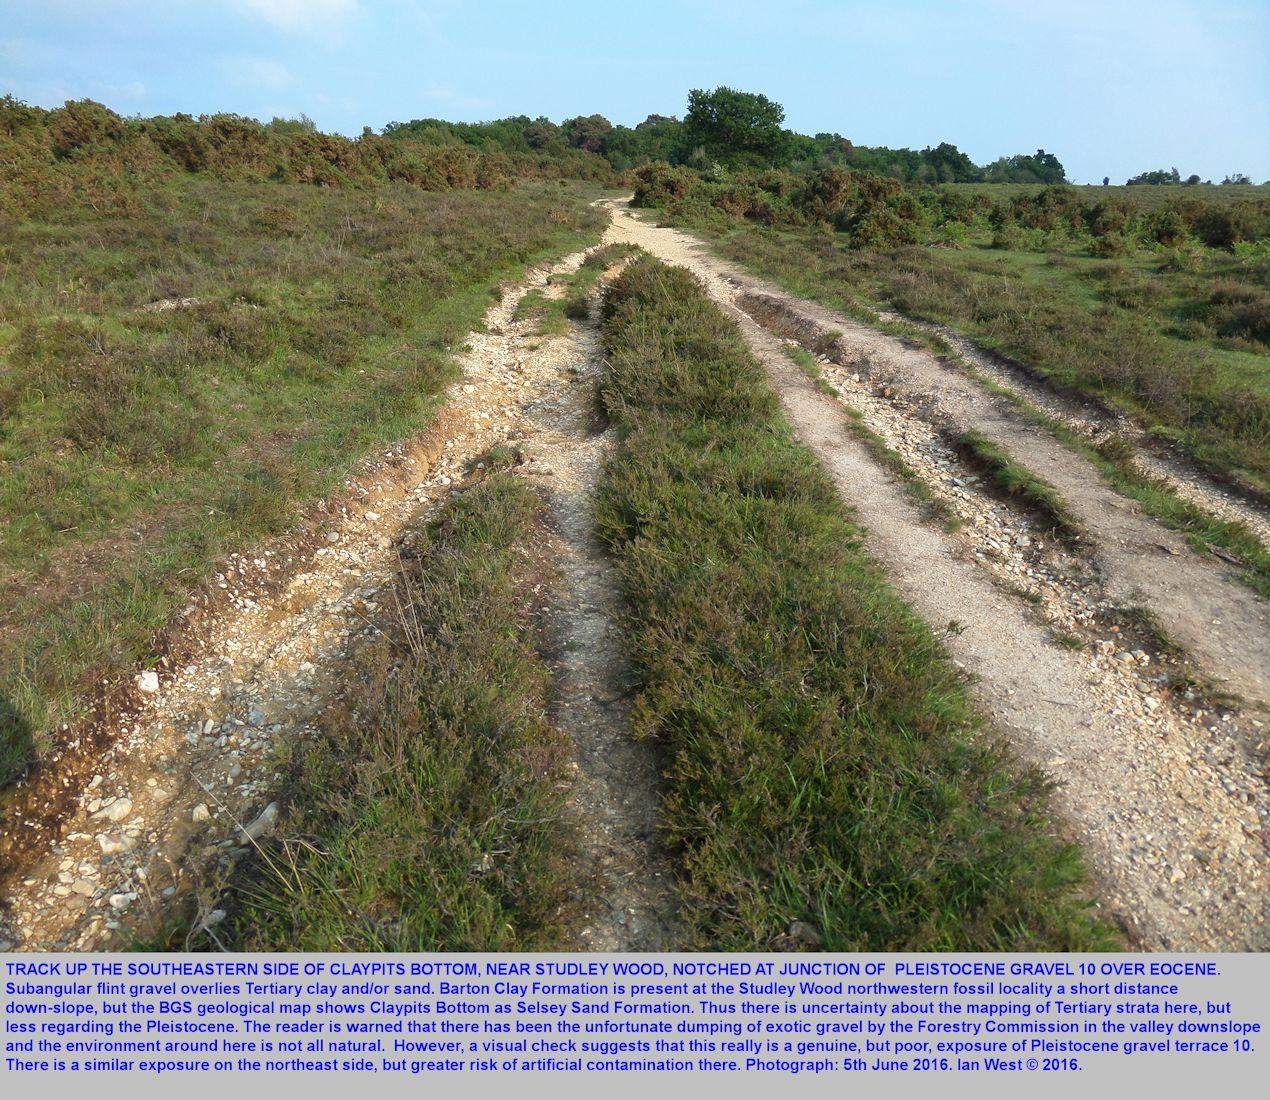 A path up the southeast side of Claypits Bottom, near Studley Wood, New Forest National Park, crosses from Tertiary, downslope, up onto high Pleistocene gravel terrace 10.